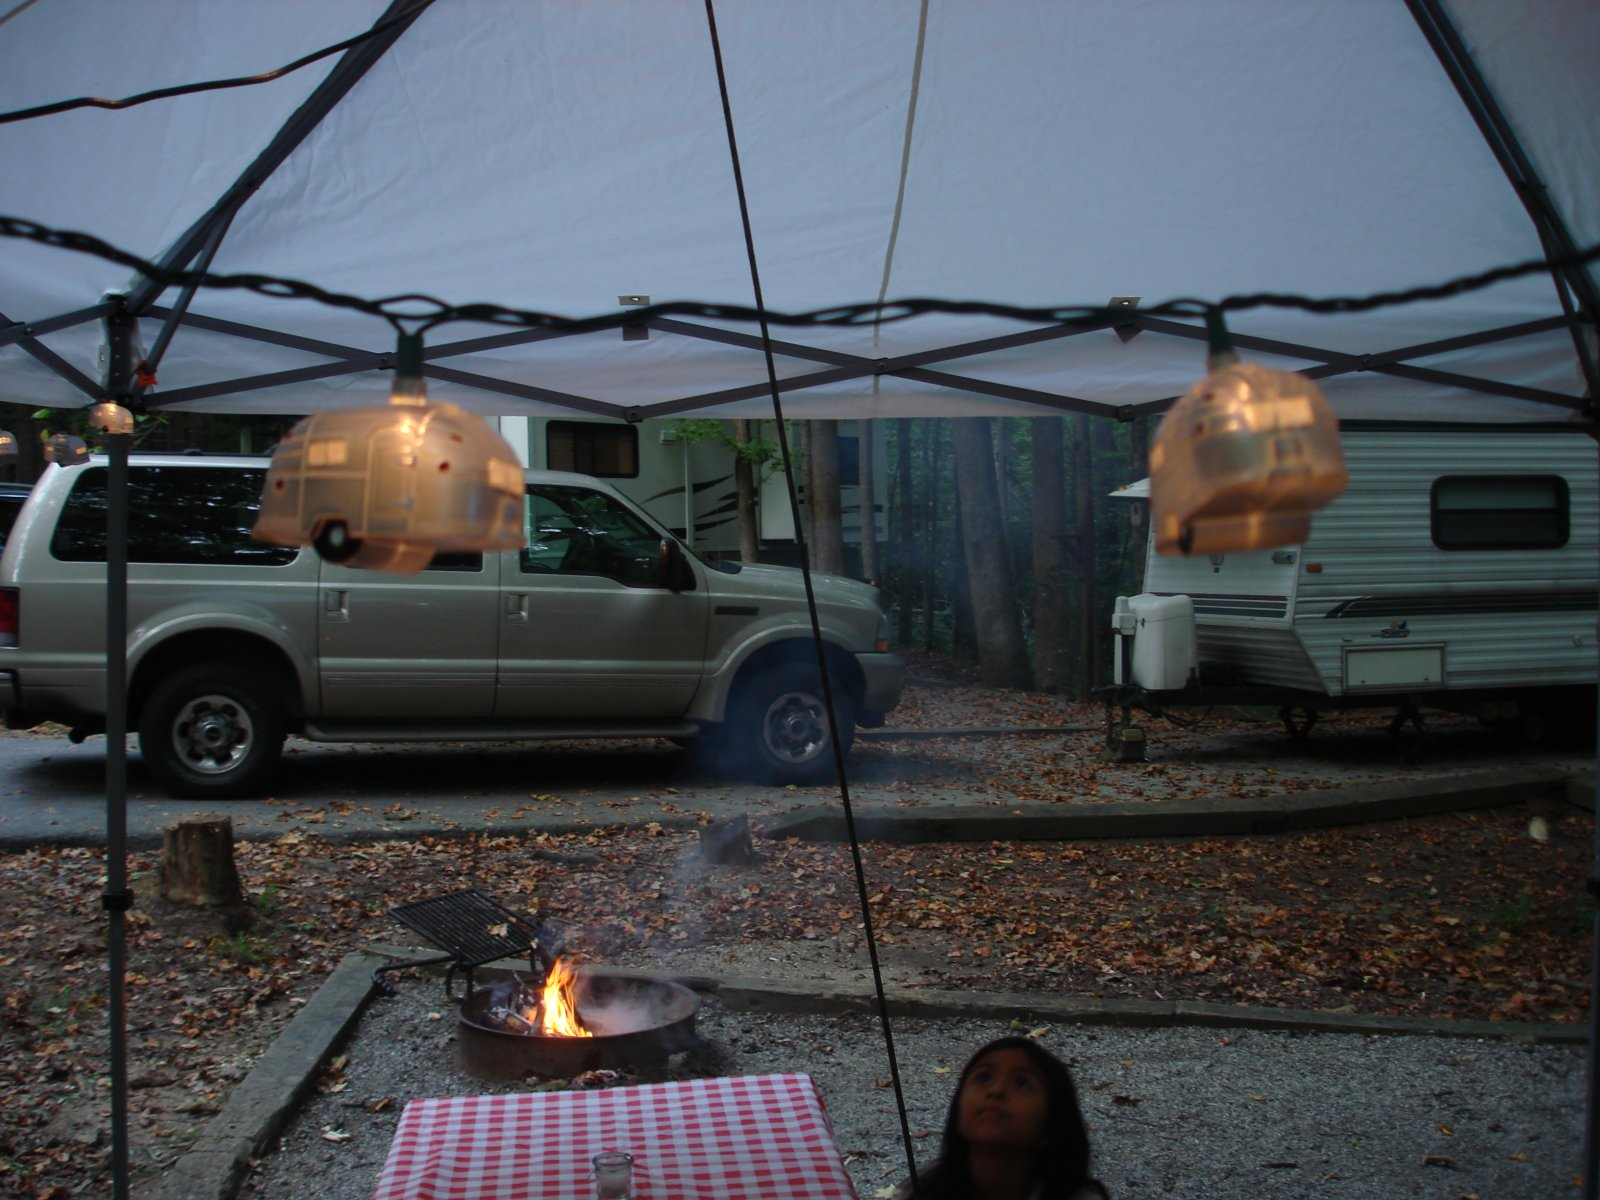 Click image for larger version  Name:campfire 005.jpg Views:75 Size:290.4 KB ID:141092